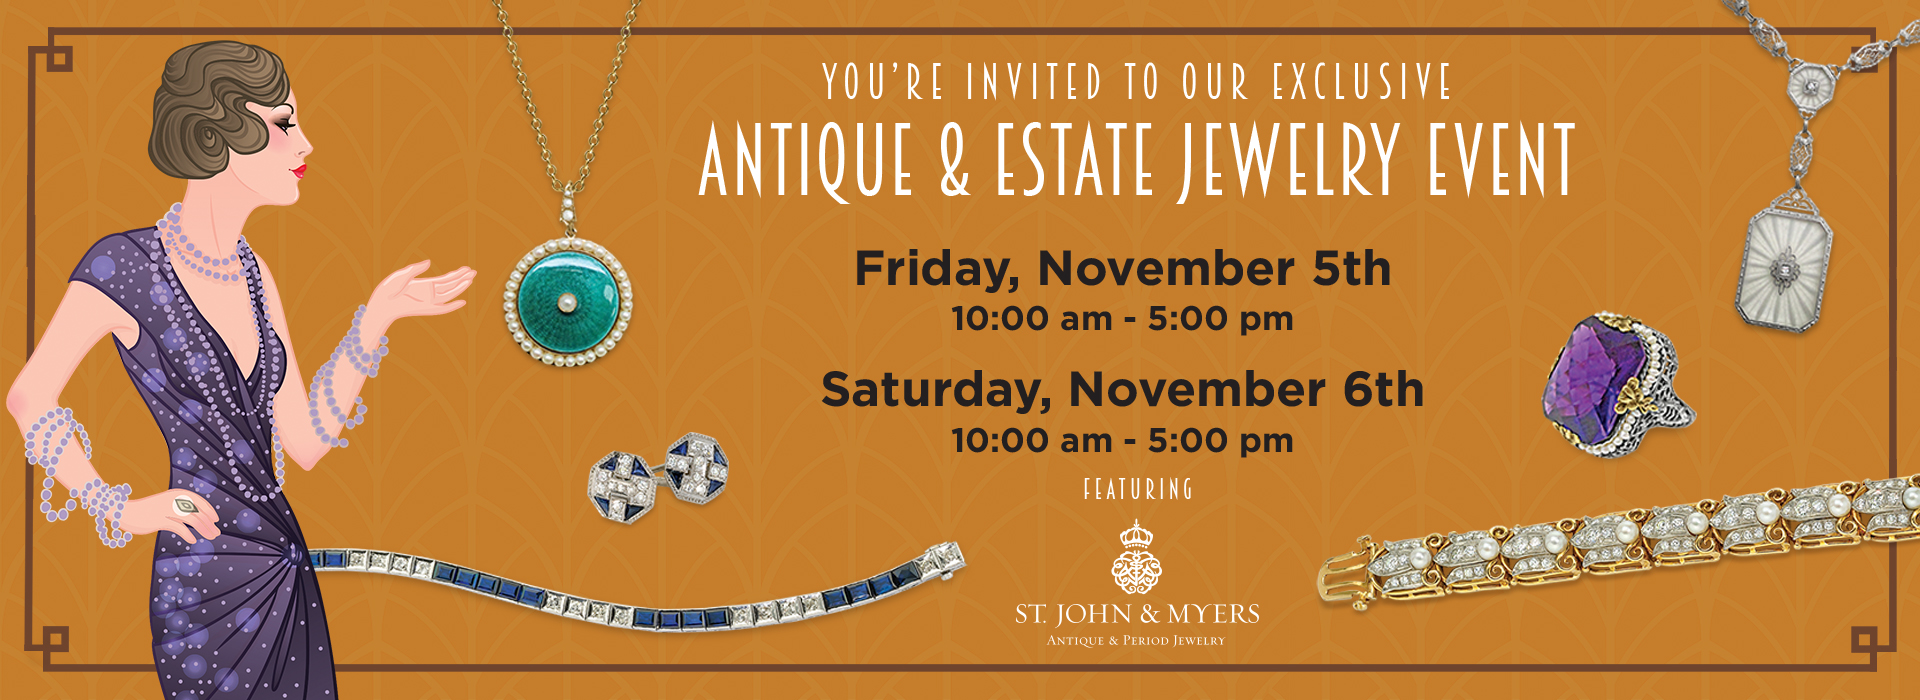 Antique and Estate Jewelry Event